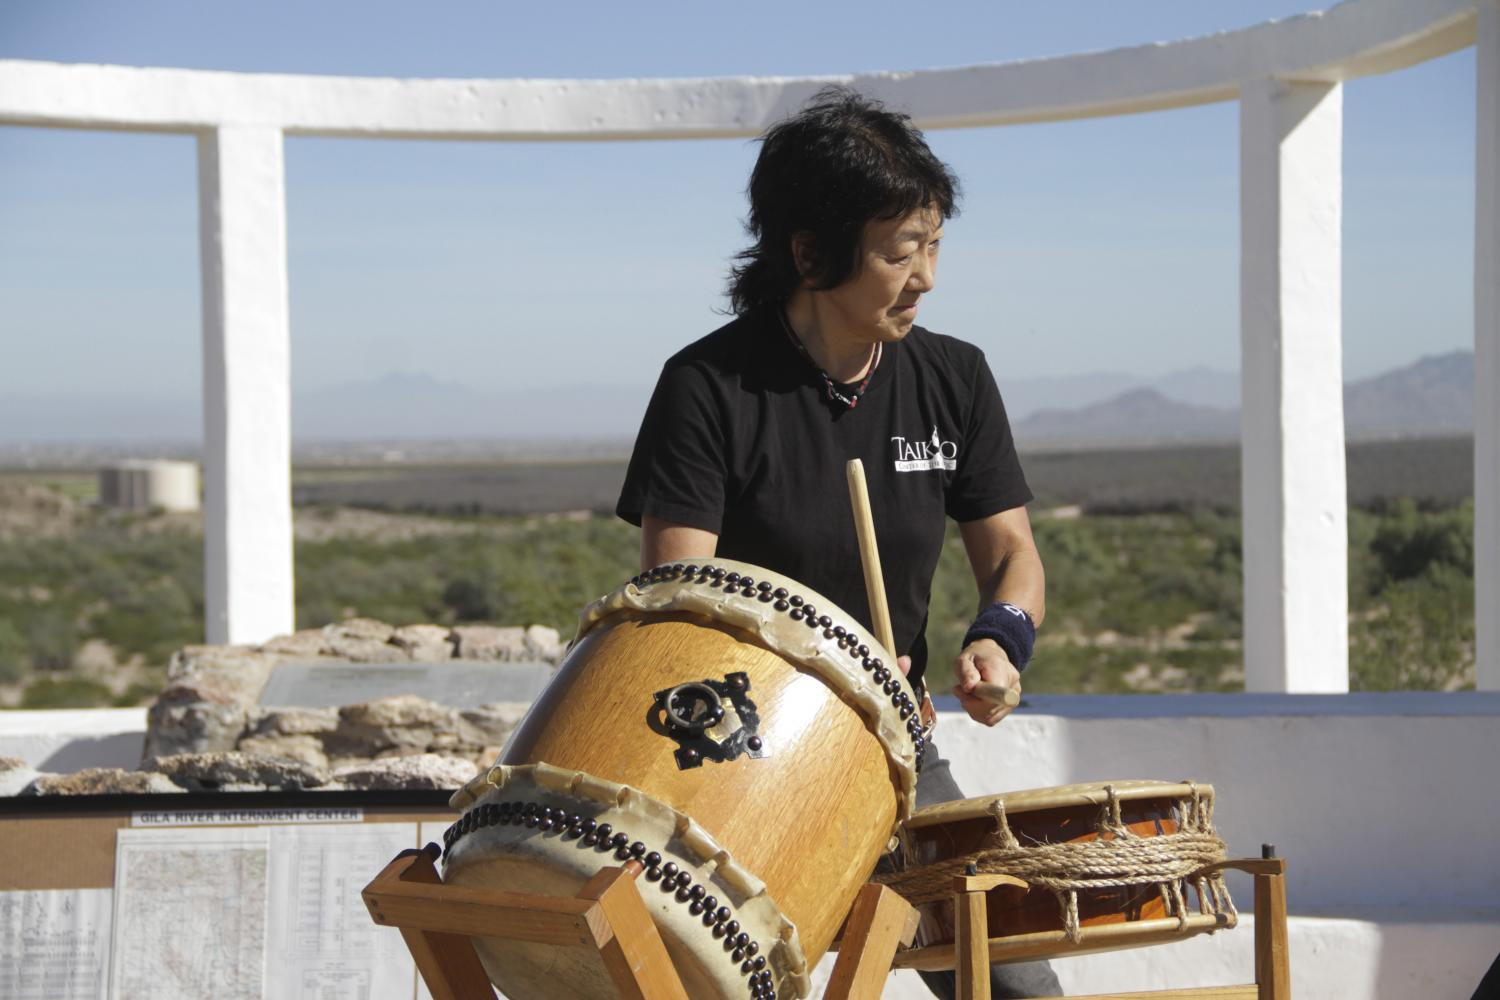 Chizuko Endo plays in a Taiko drum group